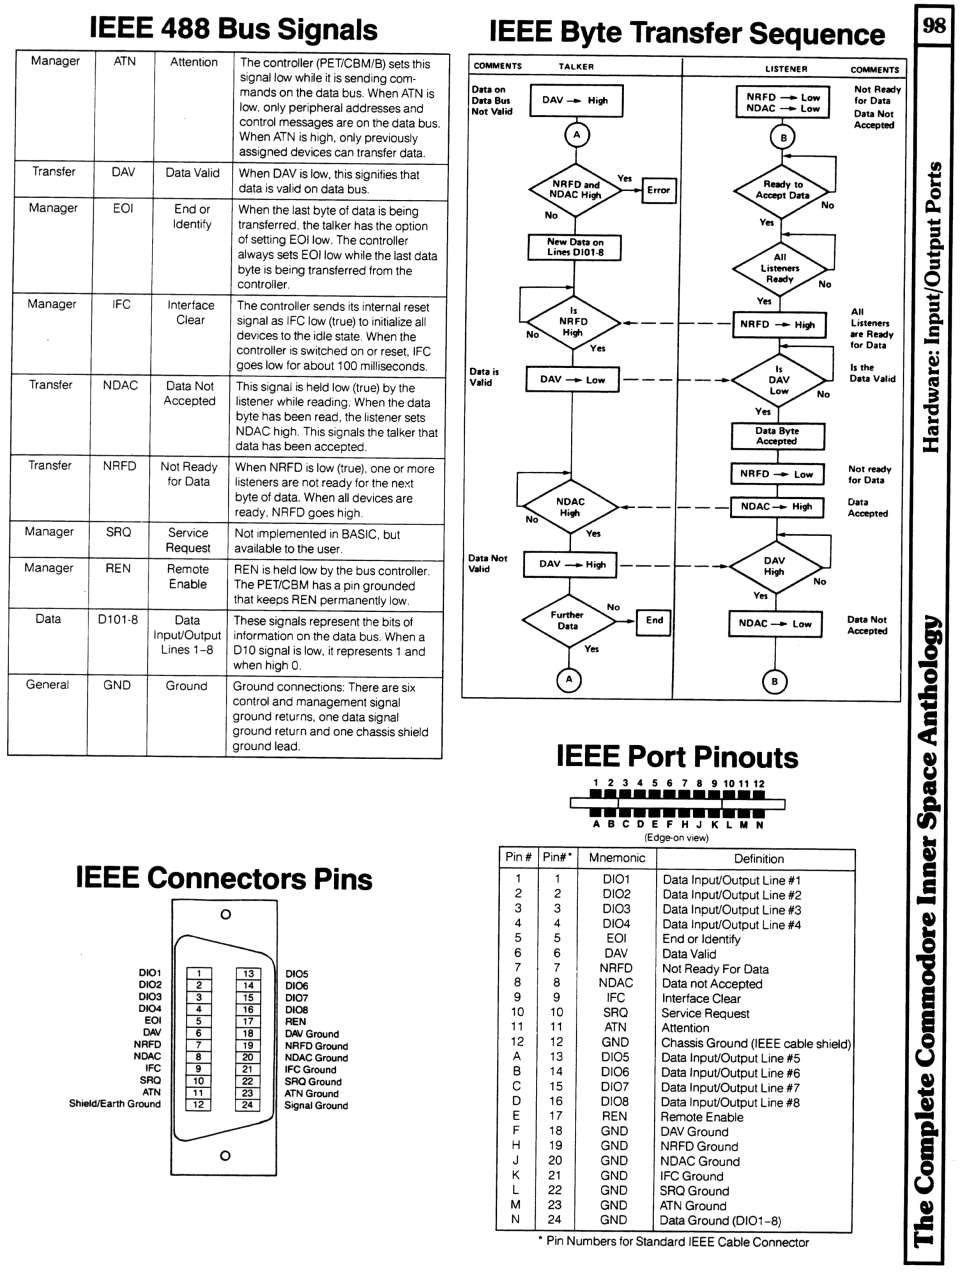 [960�1272 Hardware Section: IEEE 488 Bus Signals, IEEE Byte Transfer Sequence, IEEE Cable Connector Pinouts, IEEE Port Pinouts]